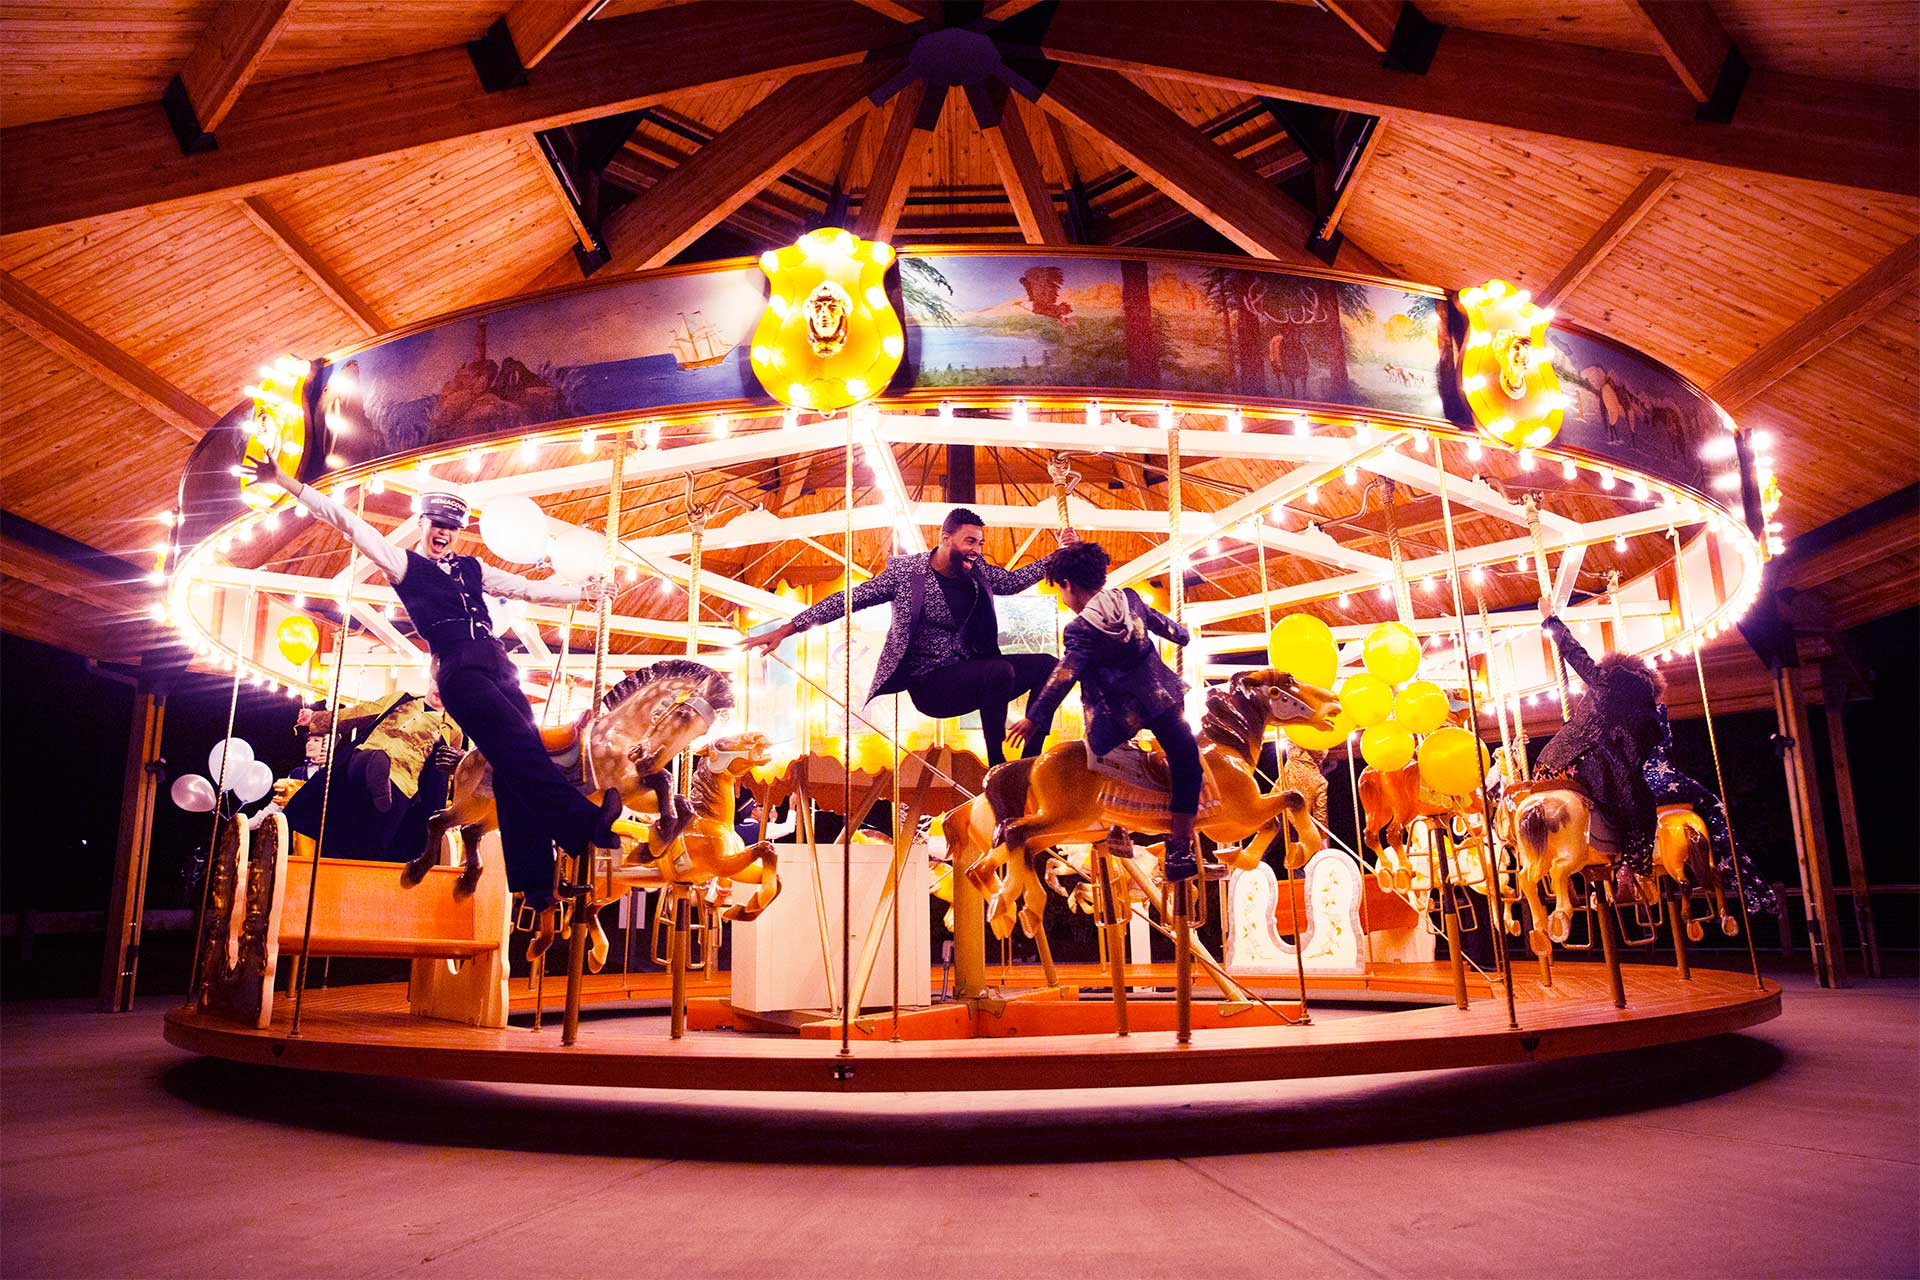 People standing on a carousel